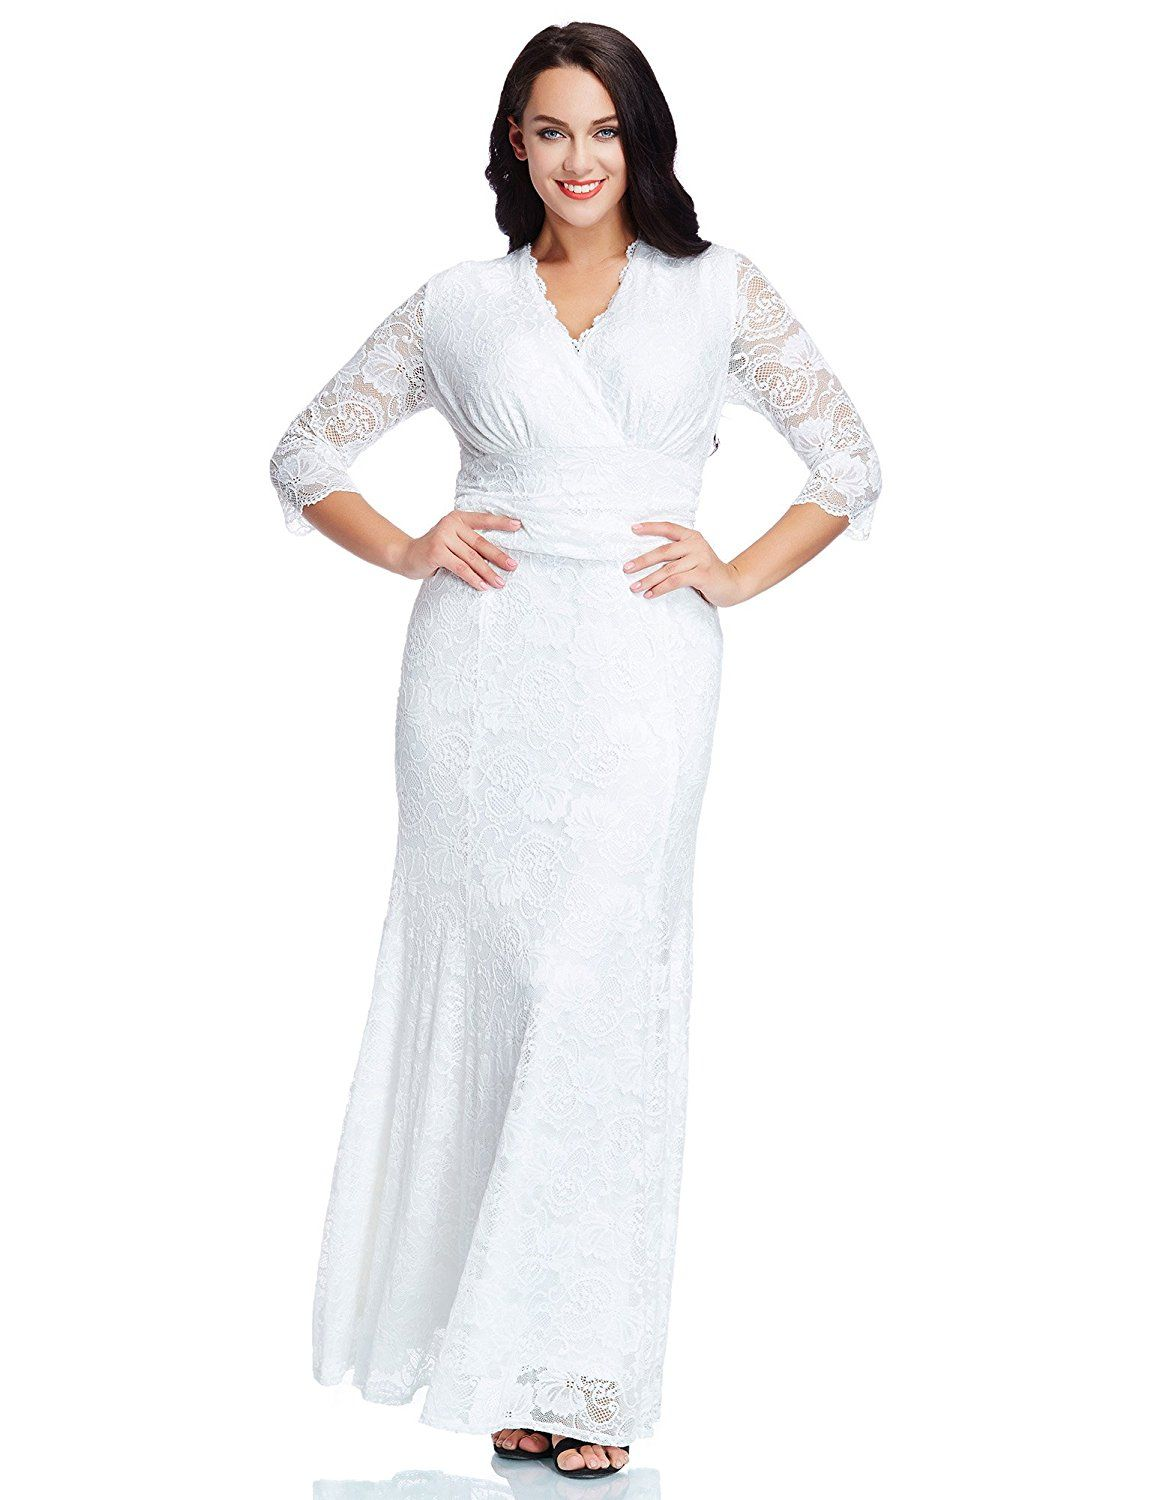 LookbookStore Women s Plus Size White Floral Lace 3 4 Sleeve Wedding Maxi  Dress    Unbelievable item right here!   Women clothing 9b98537be